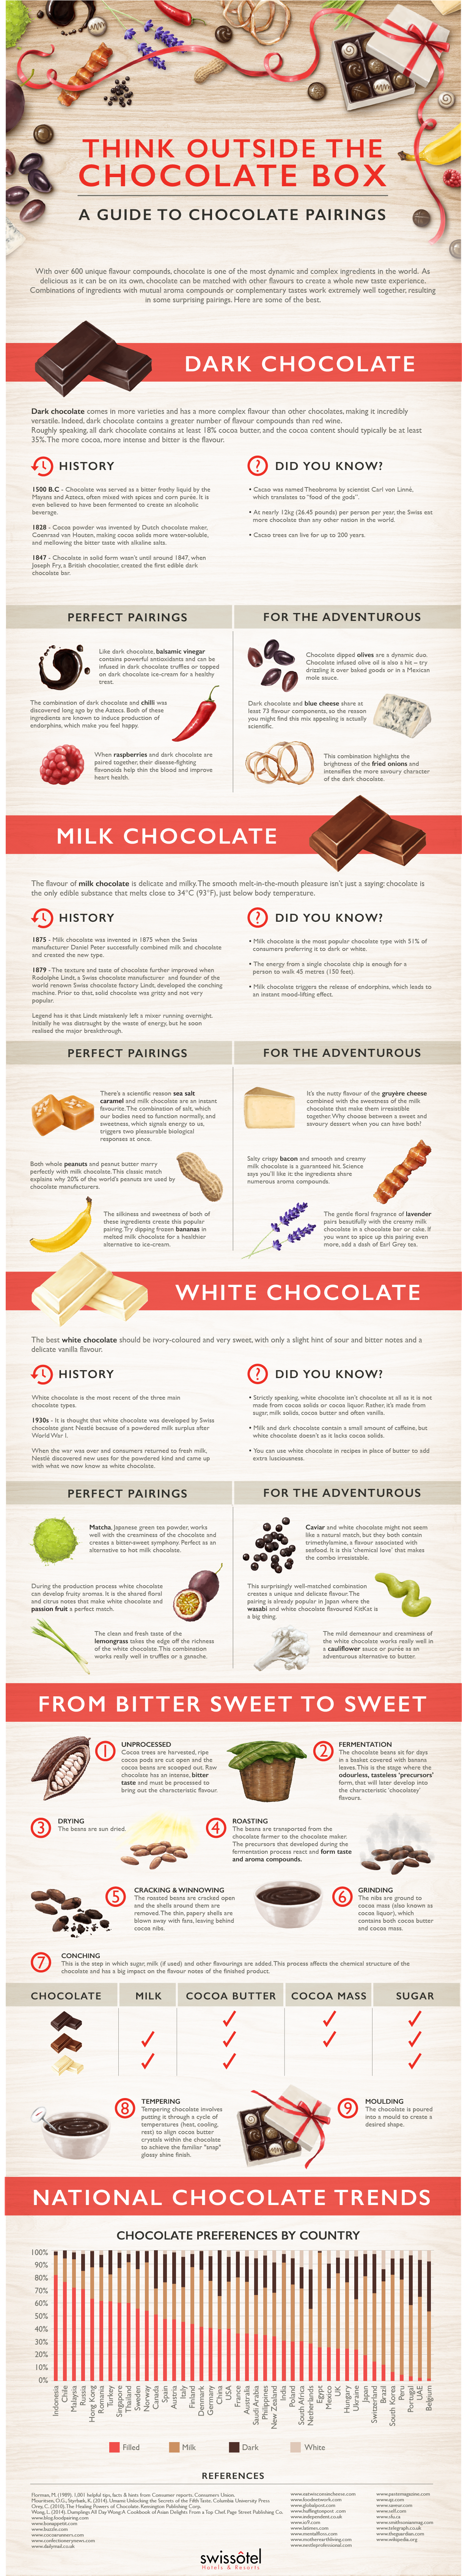 Think Outside the Chocolate Box - A Guide to Chocolate Pairings